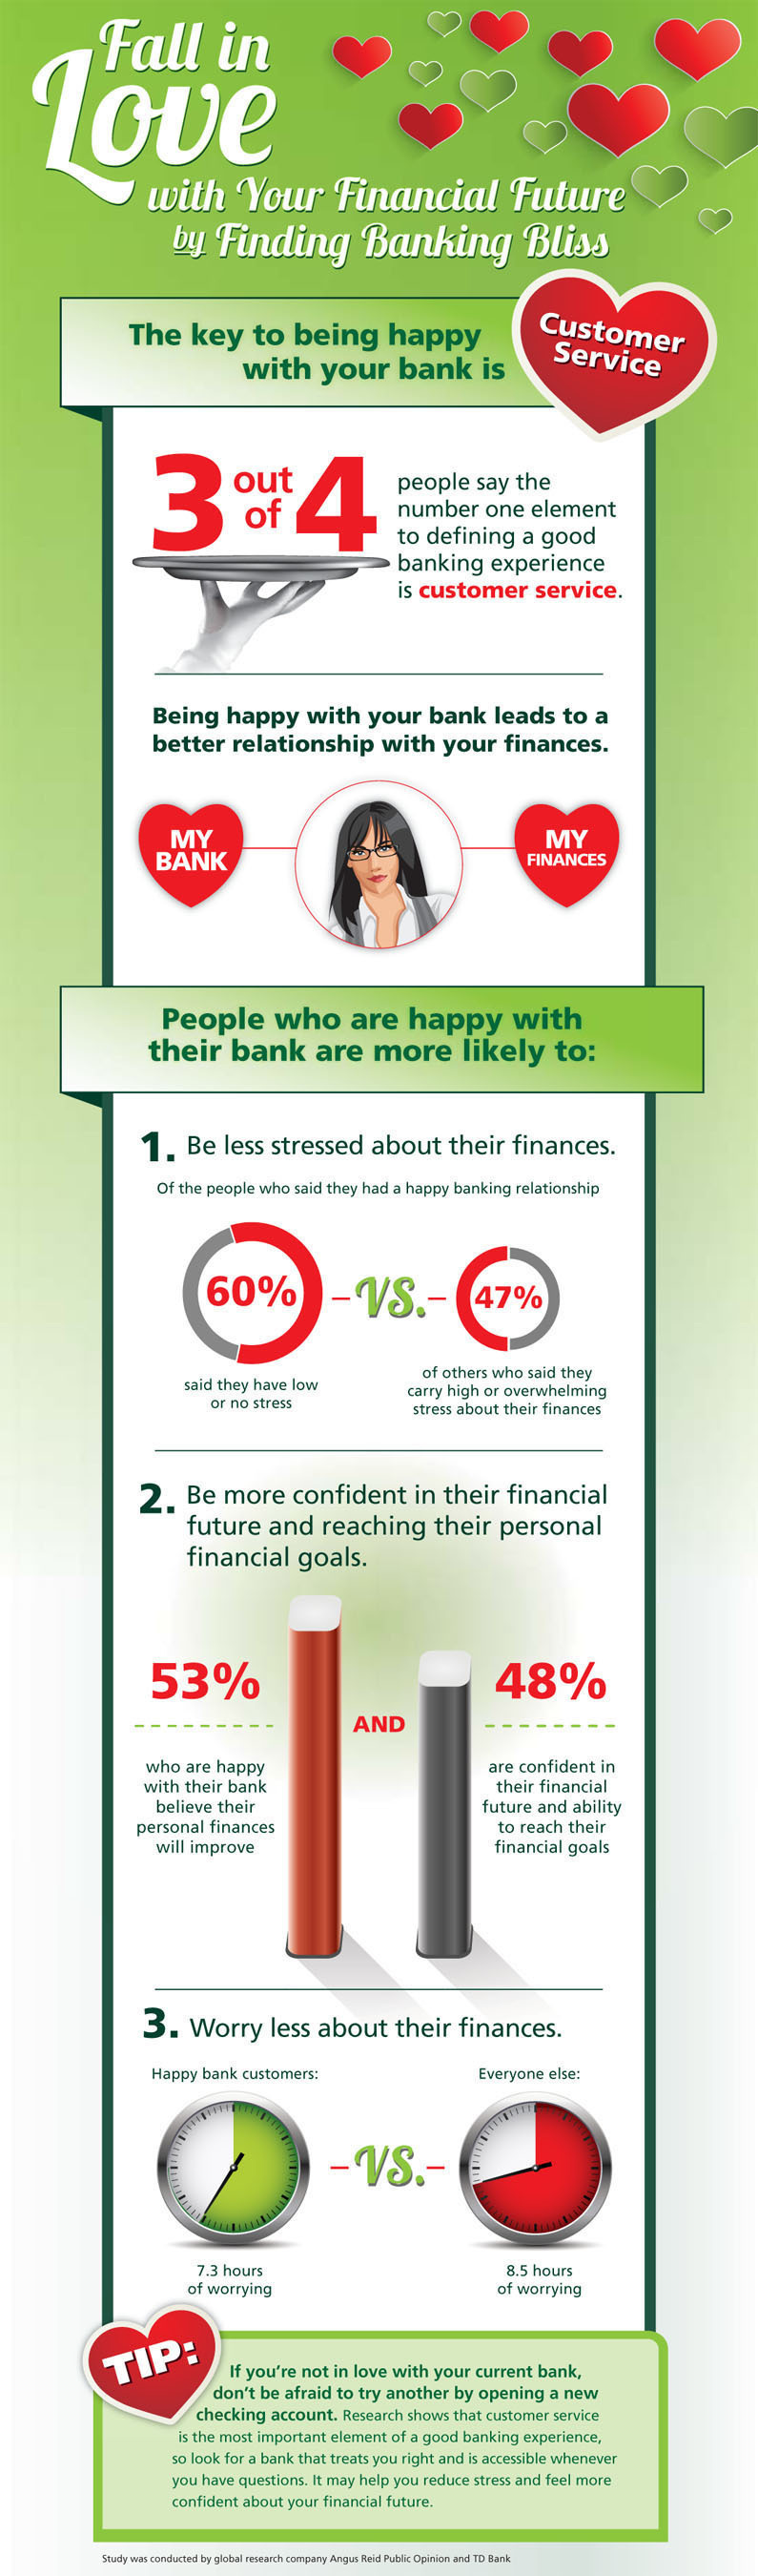 "Consumers ""feeling the love"" from their bank found to have less financial stress and more confidence in financial future according to a survey conducted by Angus Reid Public Opinion and TD Bank.  (PRNewsFoto/TD Bank)"